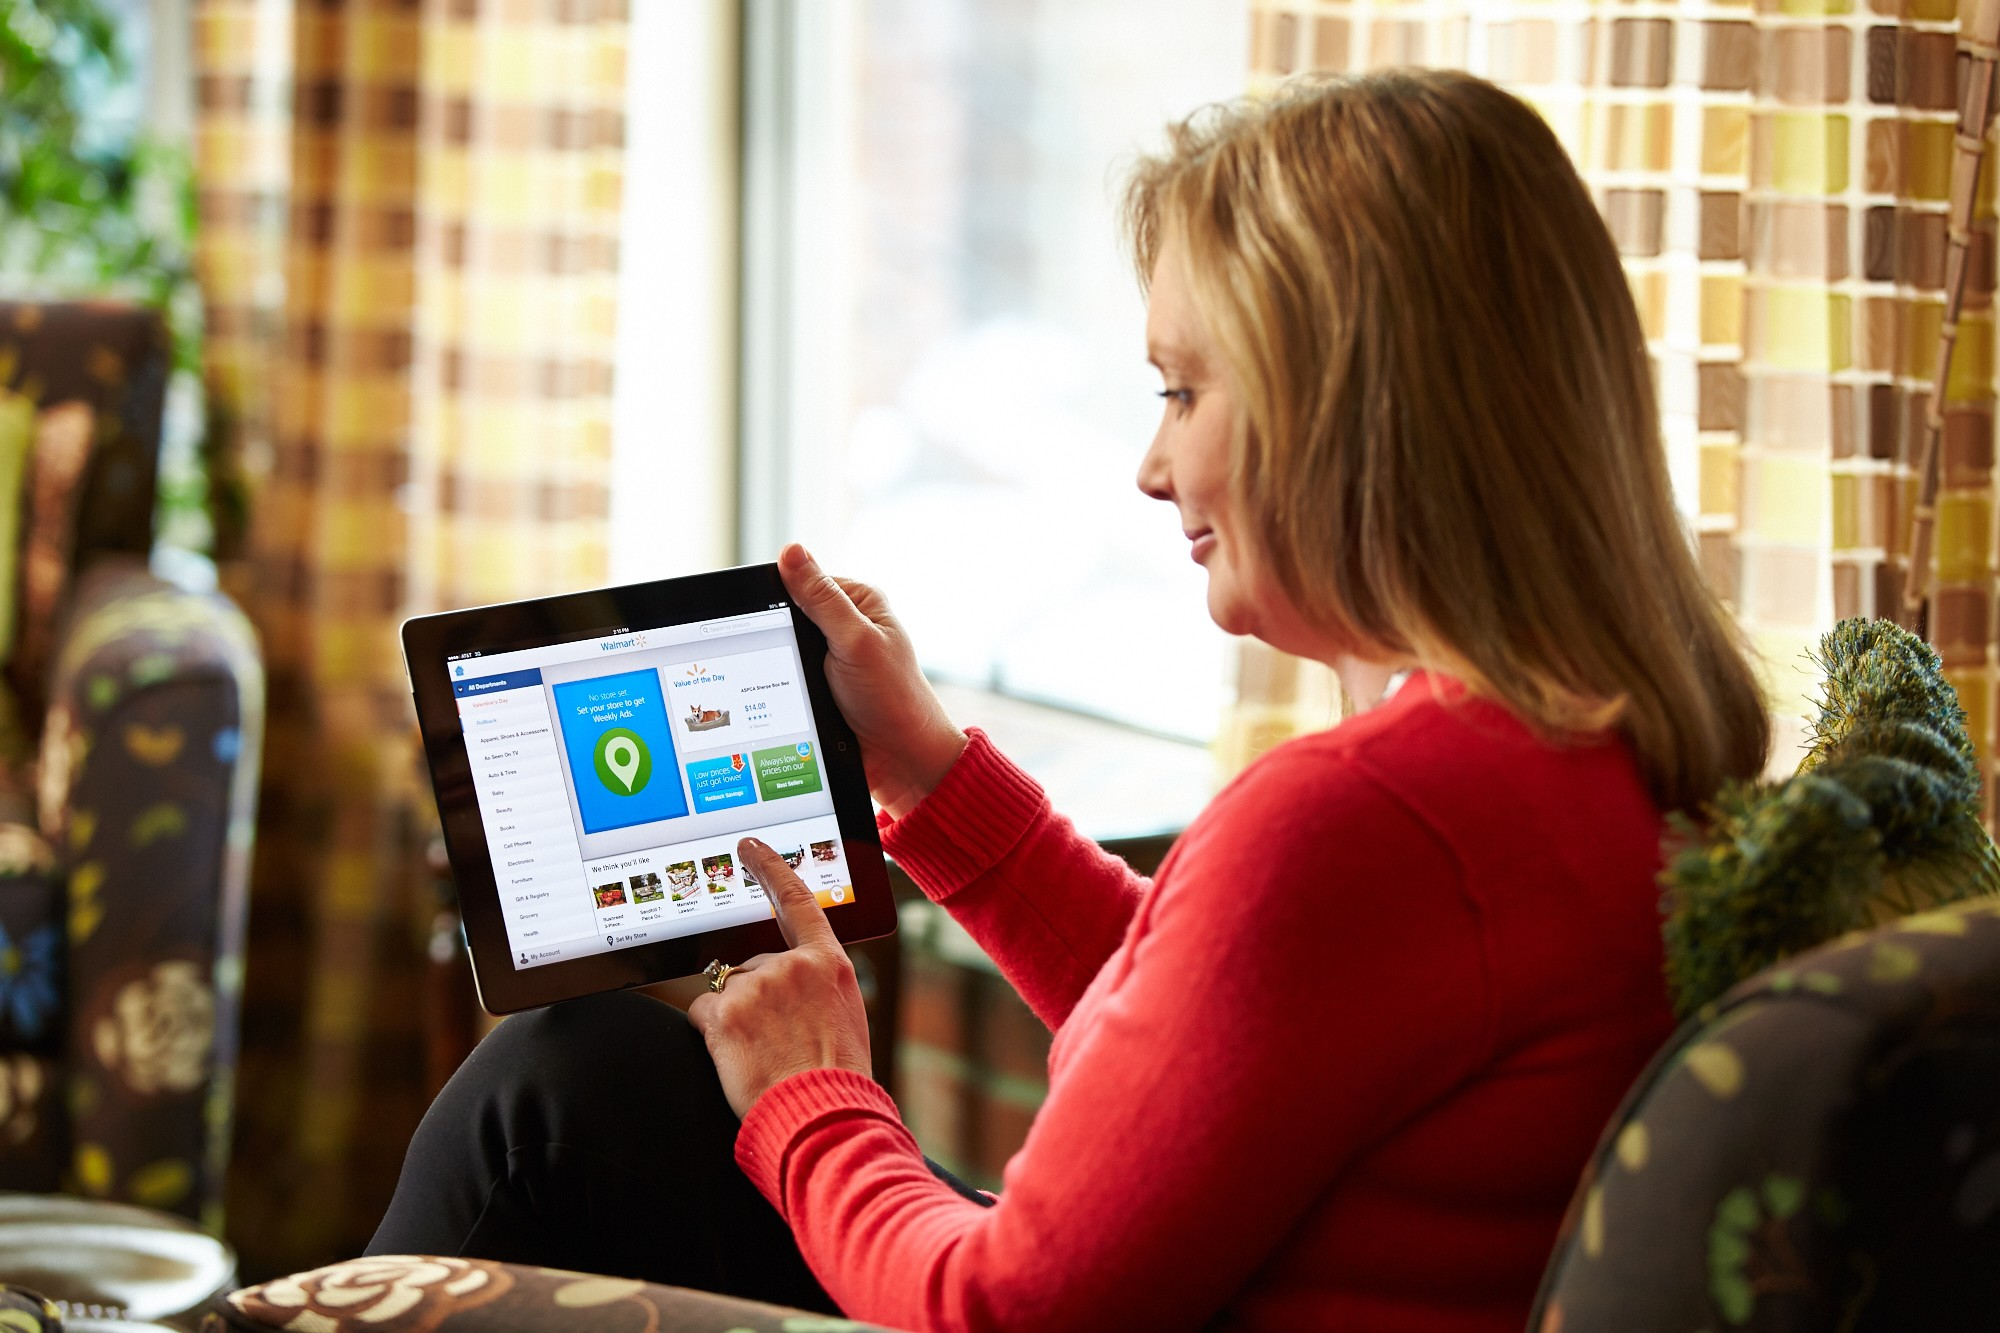 A female customer shops Walmart.com from tablet